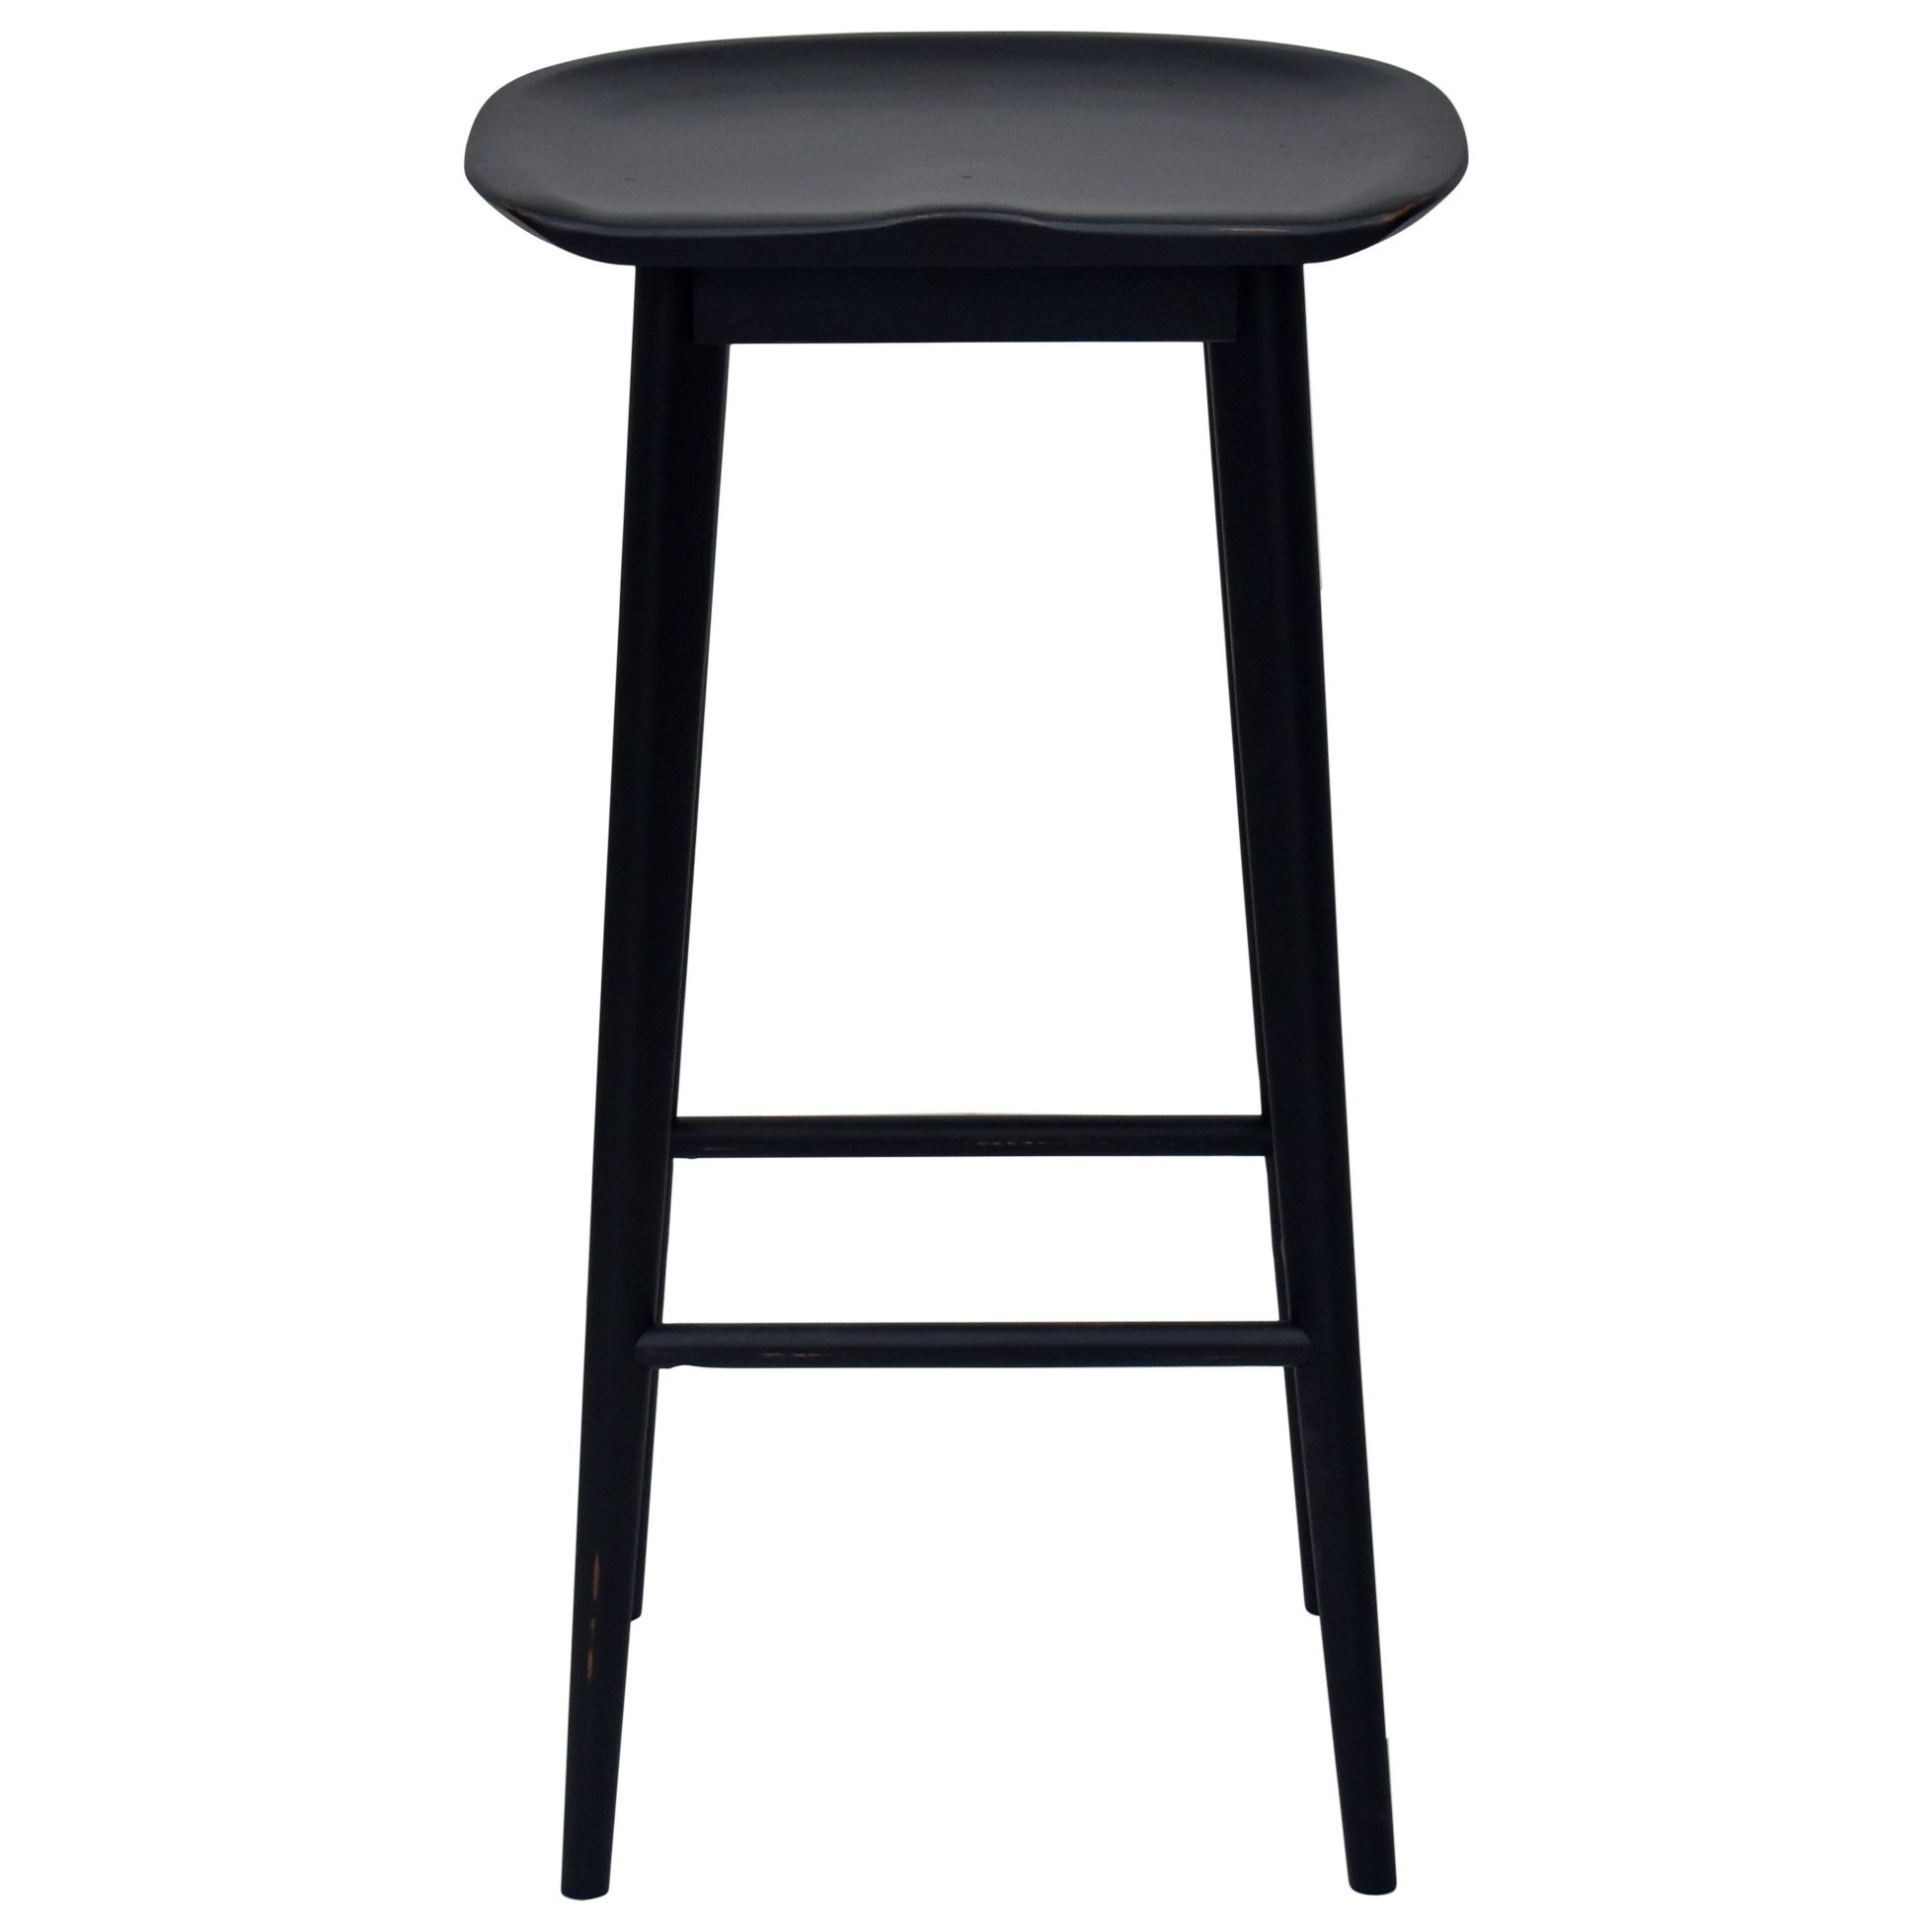 Hilton Bar Stool by Steve Silver at Walker's Furniture